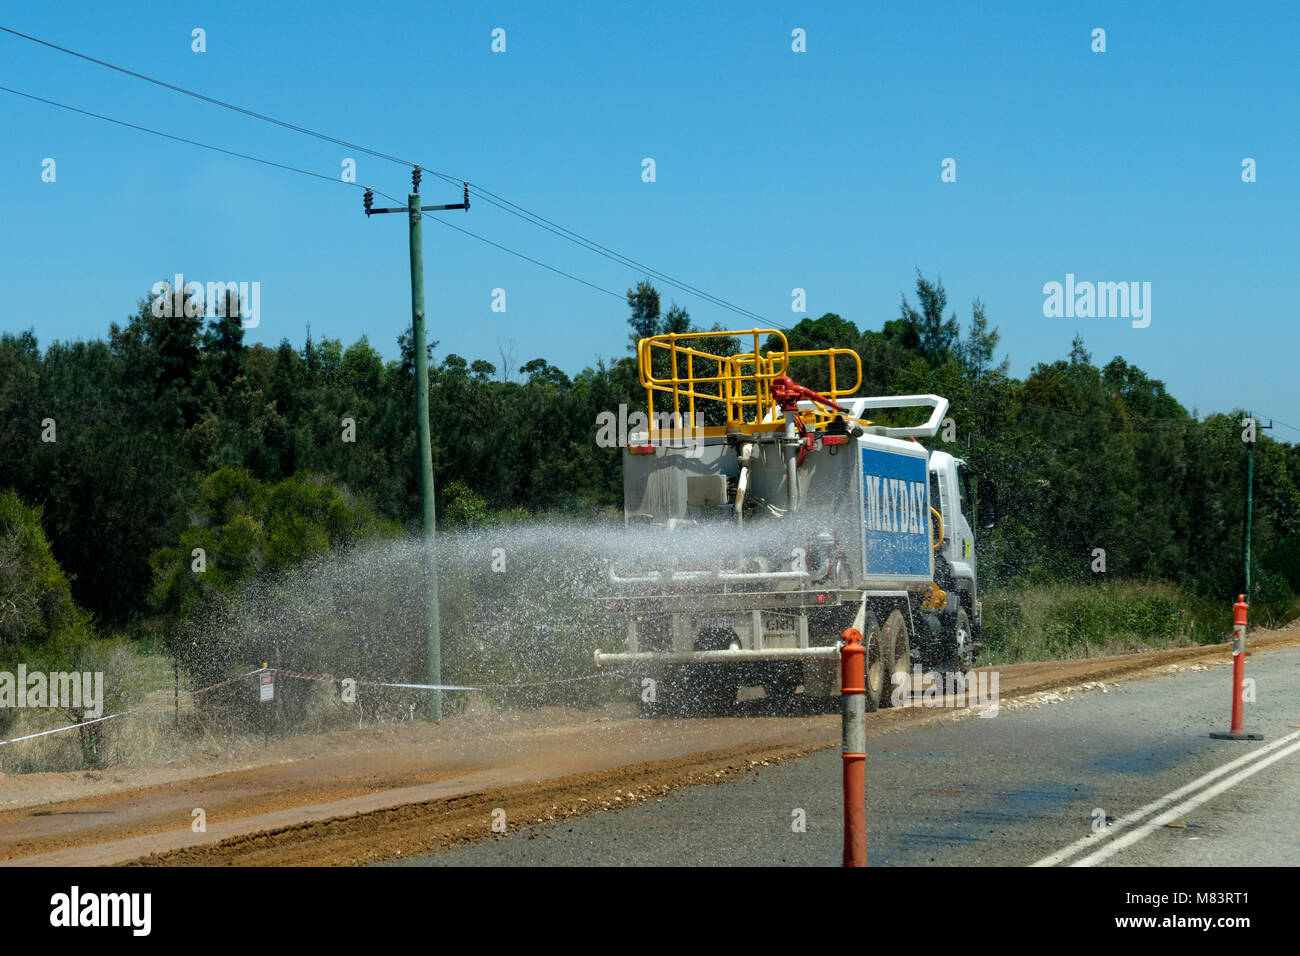 Water truck spraying water on road works, Perth, Western Australia Stock Photo